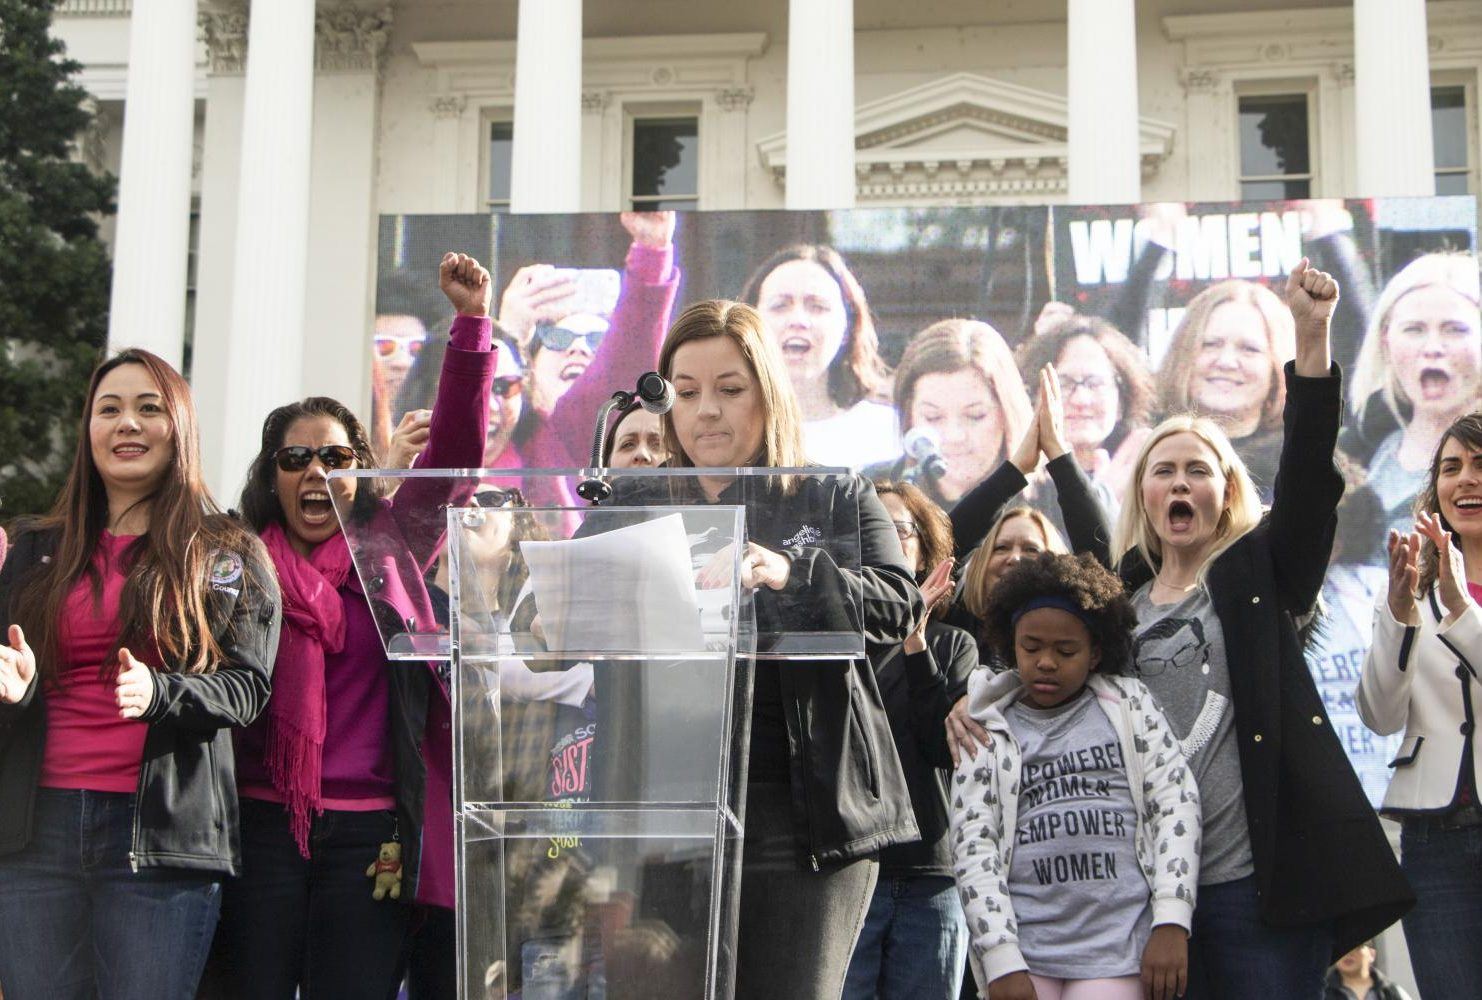 Sacramento councilwoman Angelique Ashby reads off the names of women who were recently elected to boards and councils in the Sacramento area while some of whom joined her on stage at the steps of the California State Capitol during the third annual Sacramento Women's March on Jan. 19, 2019.